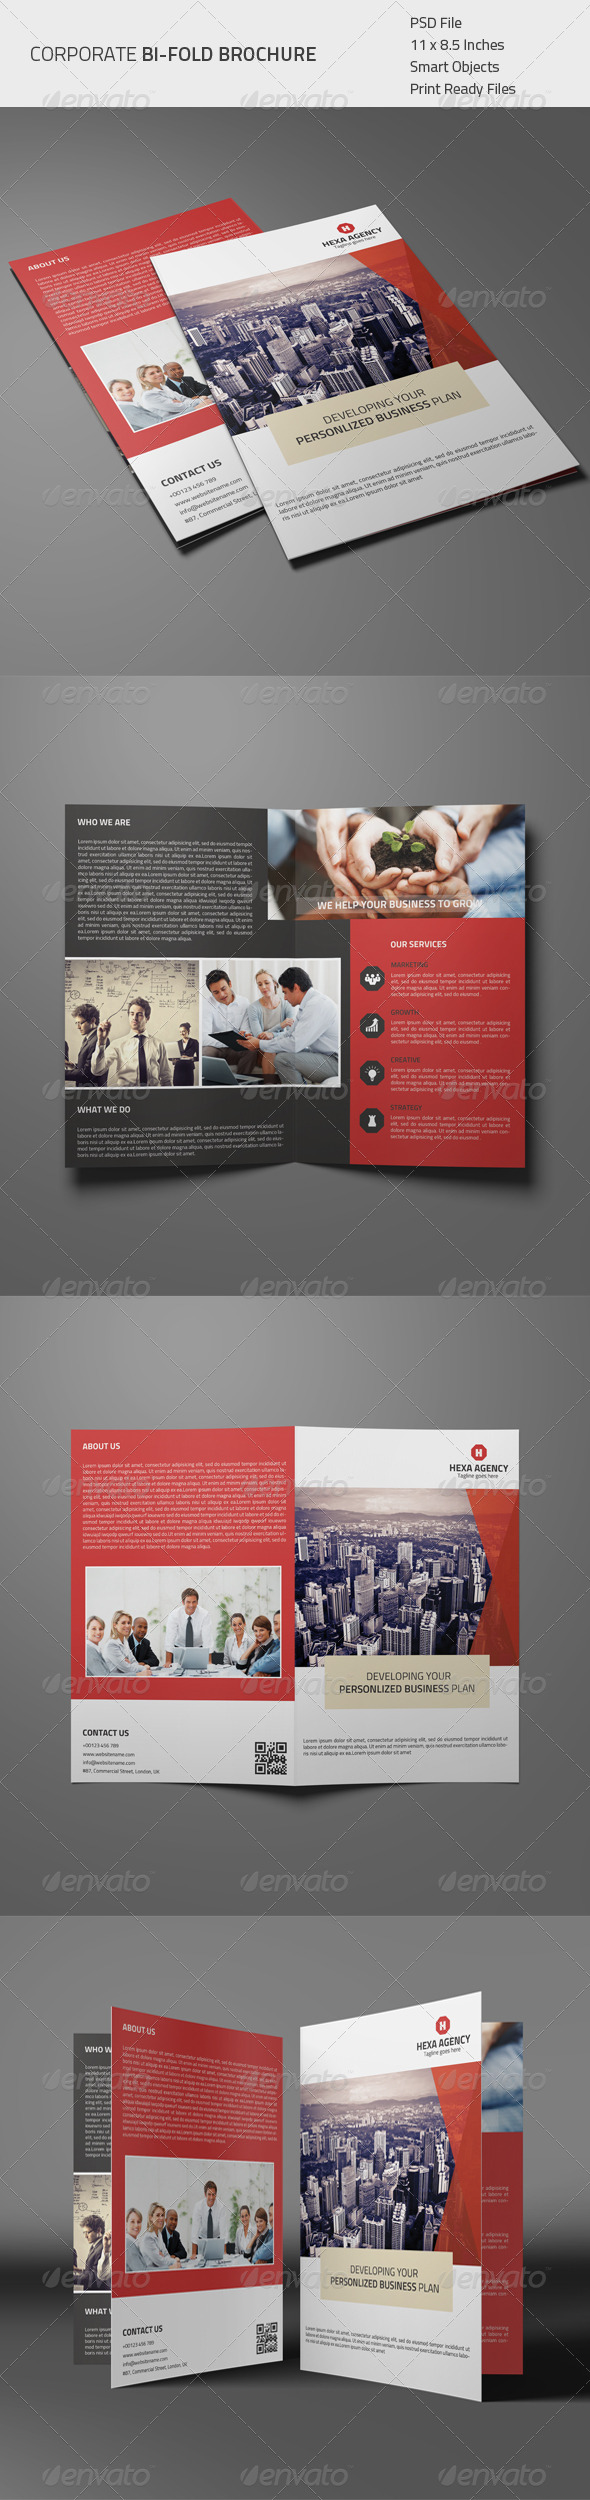 GraphicRiver Corporate Bi-fold Brochure 01 8566989